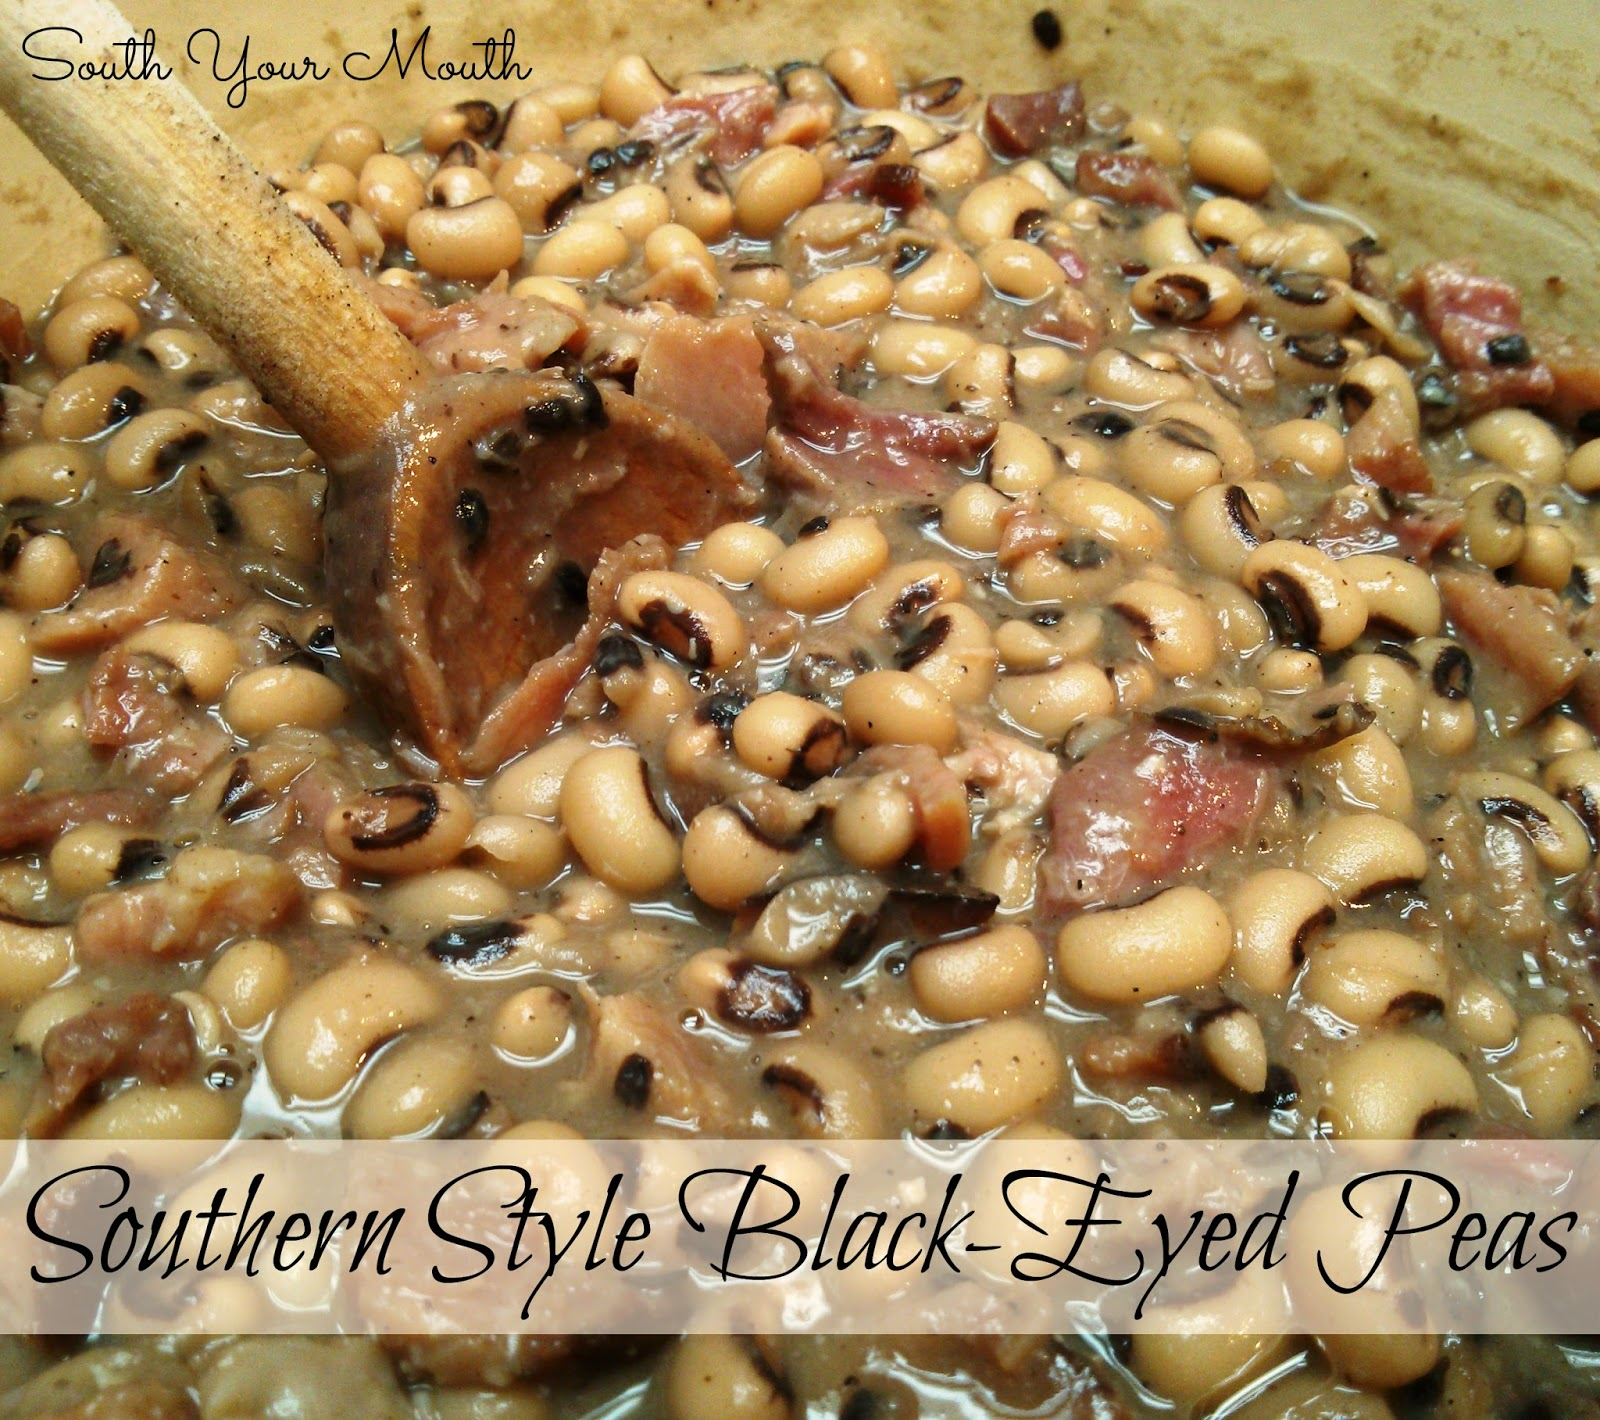 South your mouth southern style black eyed peas southern style black eyed peas 1 pound dried black eyed peas water 14 cup butter 1 medium onion finely diced 2 smoked ham hocks 1 2 teaspoons salt forumfinder Choice Image